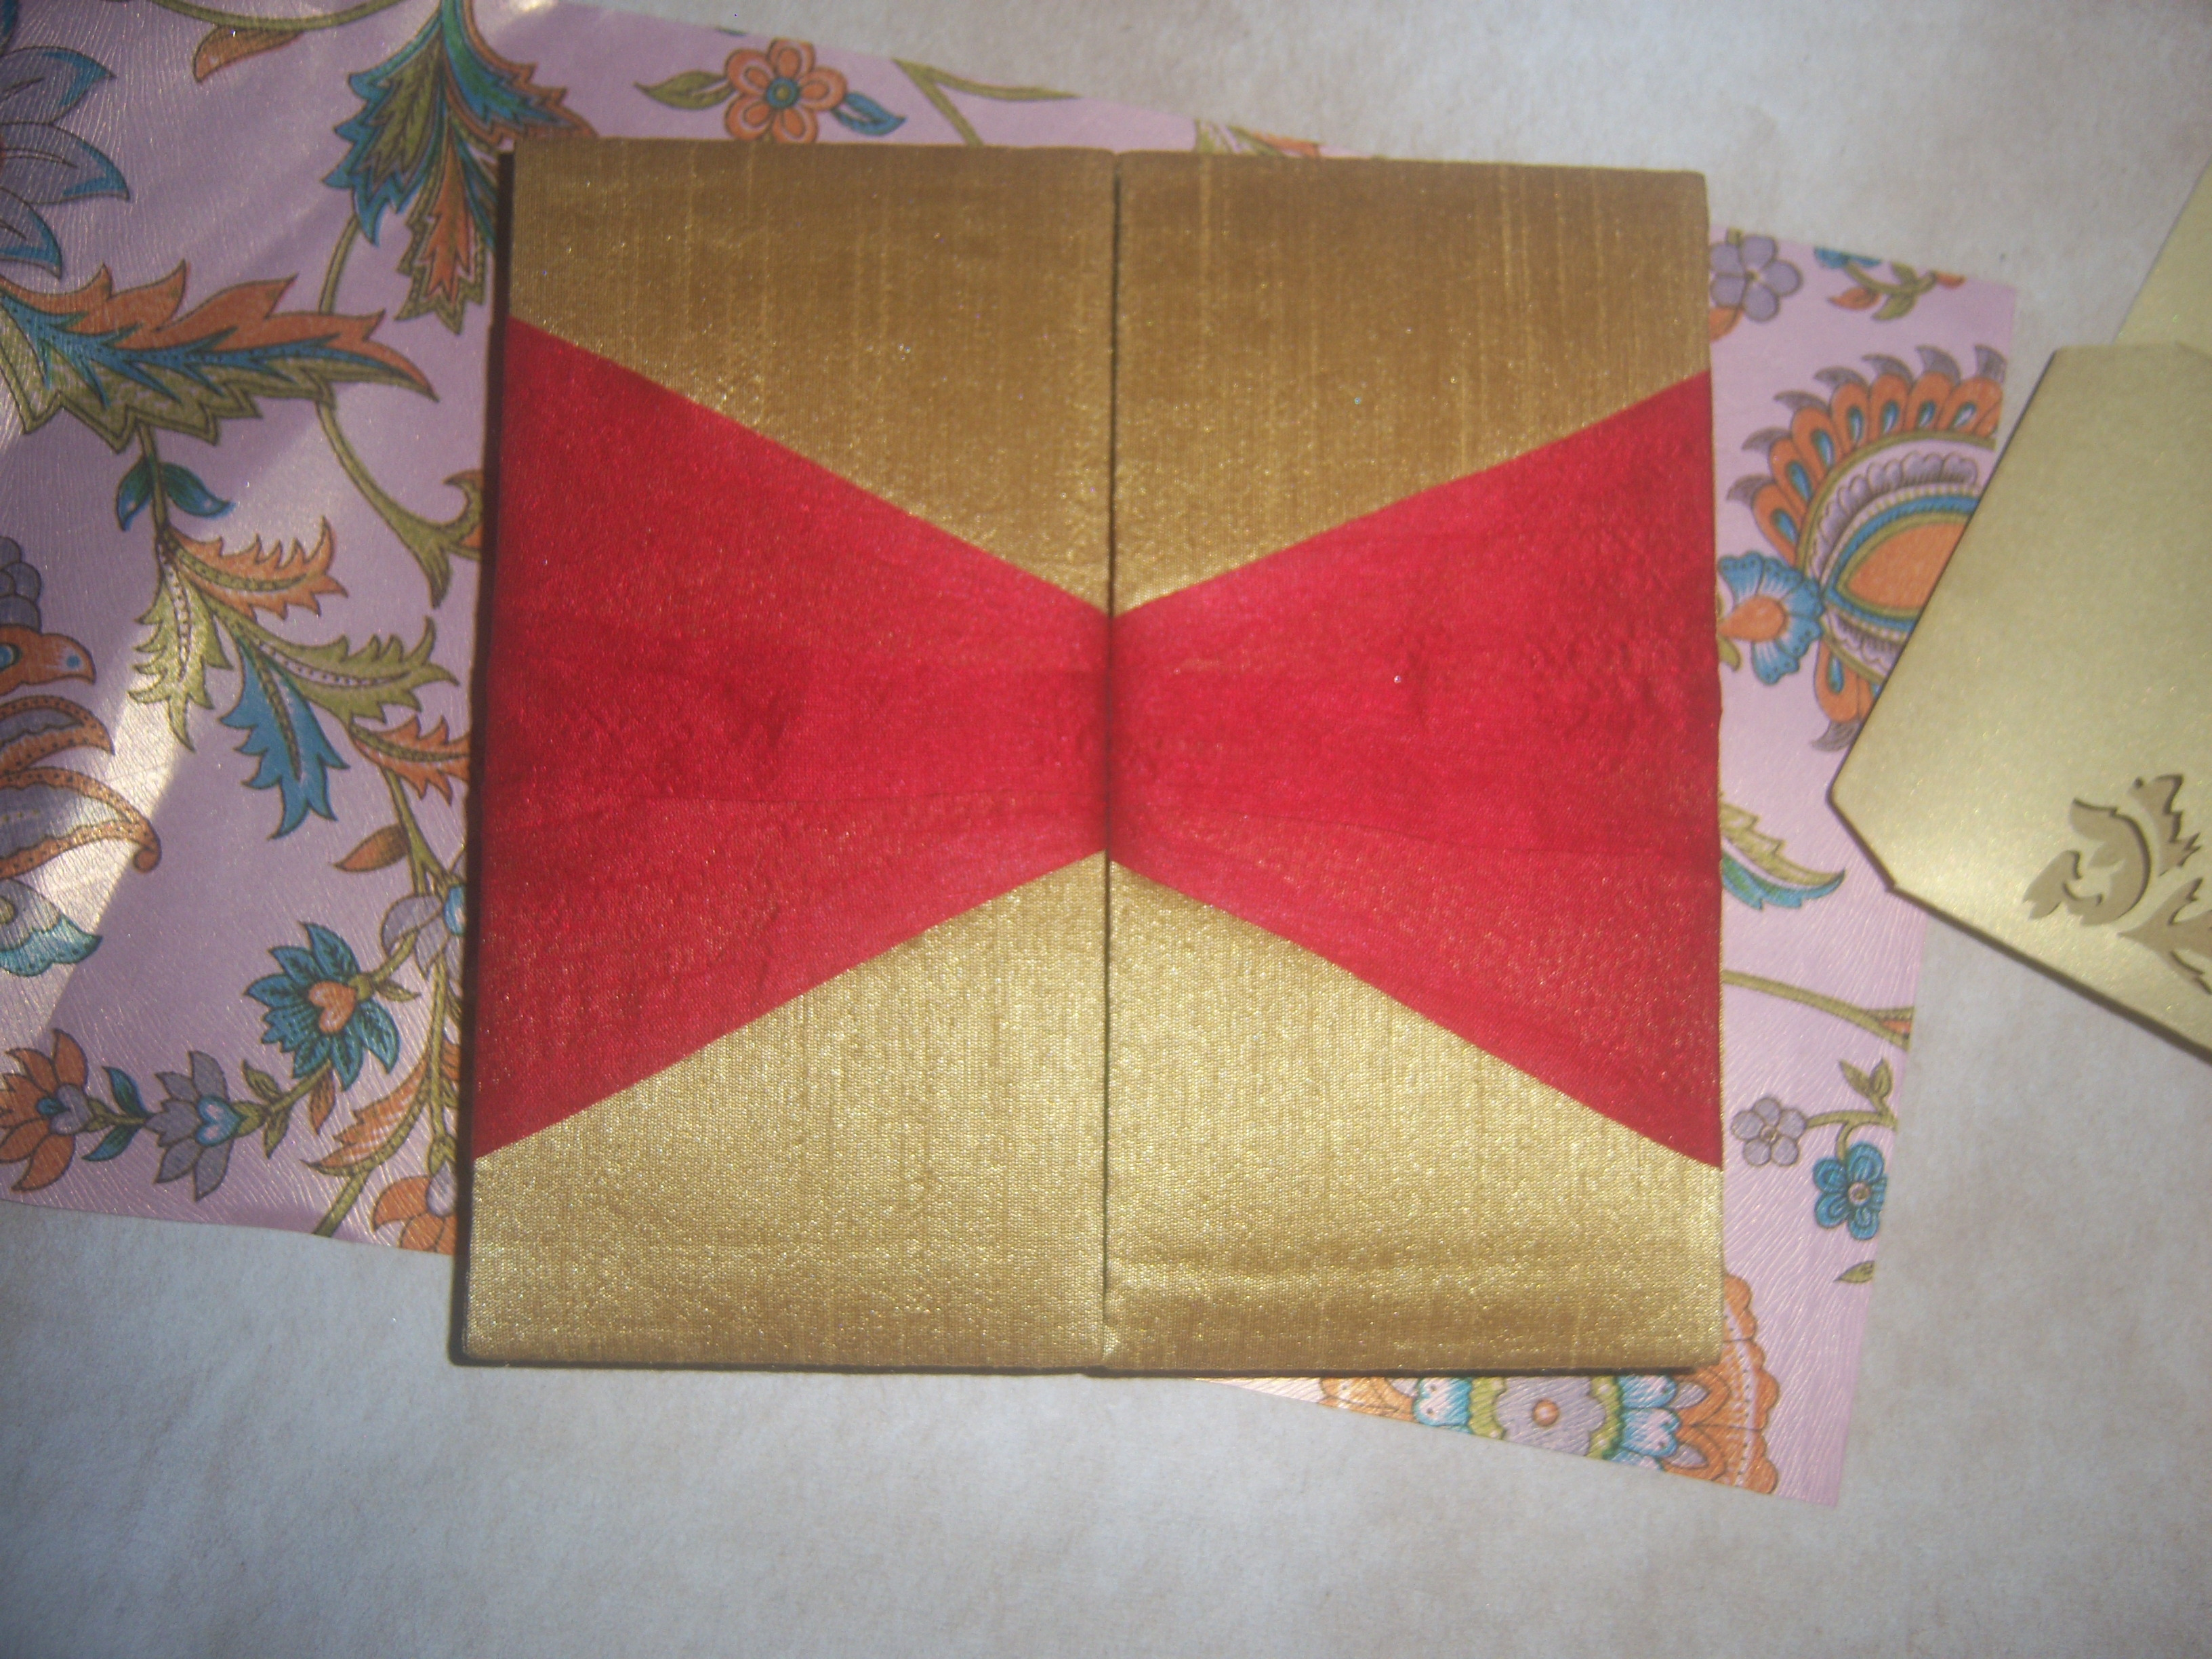 Wedding Invitation Fabric Covered Boxes – coniferhandmadepaperjourney